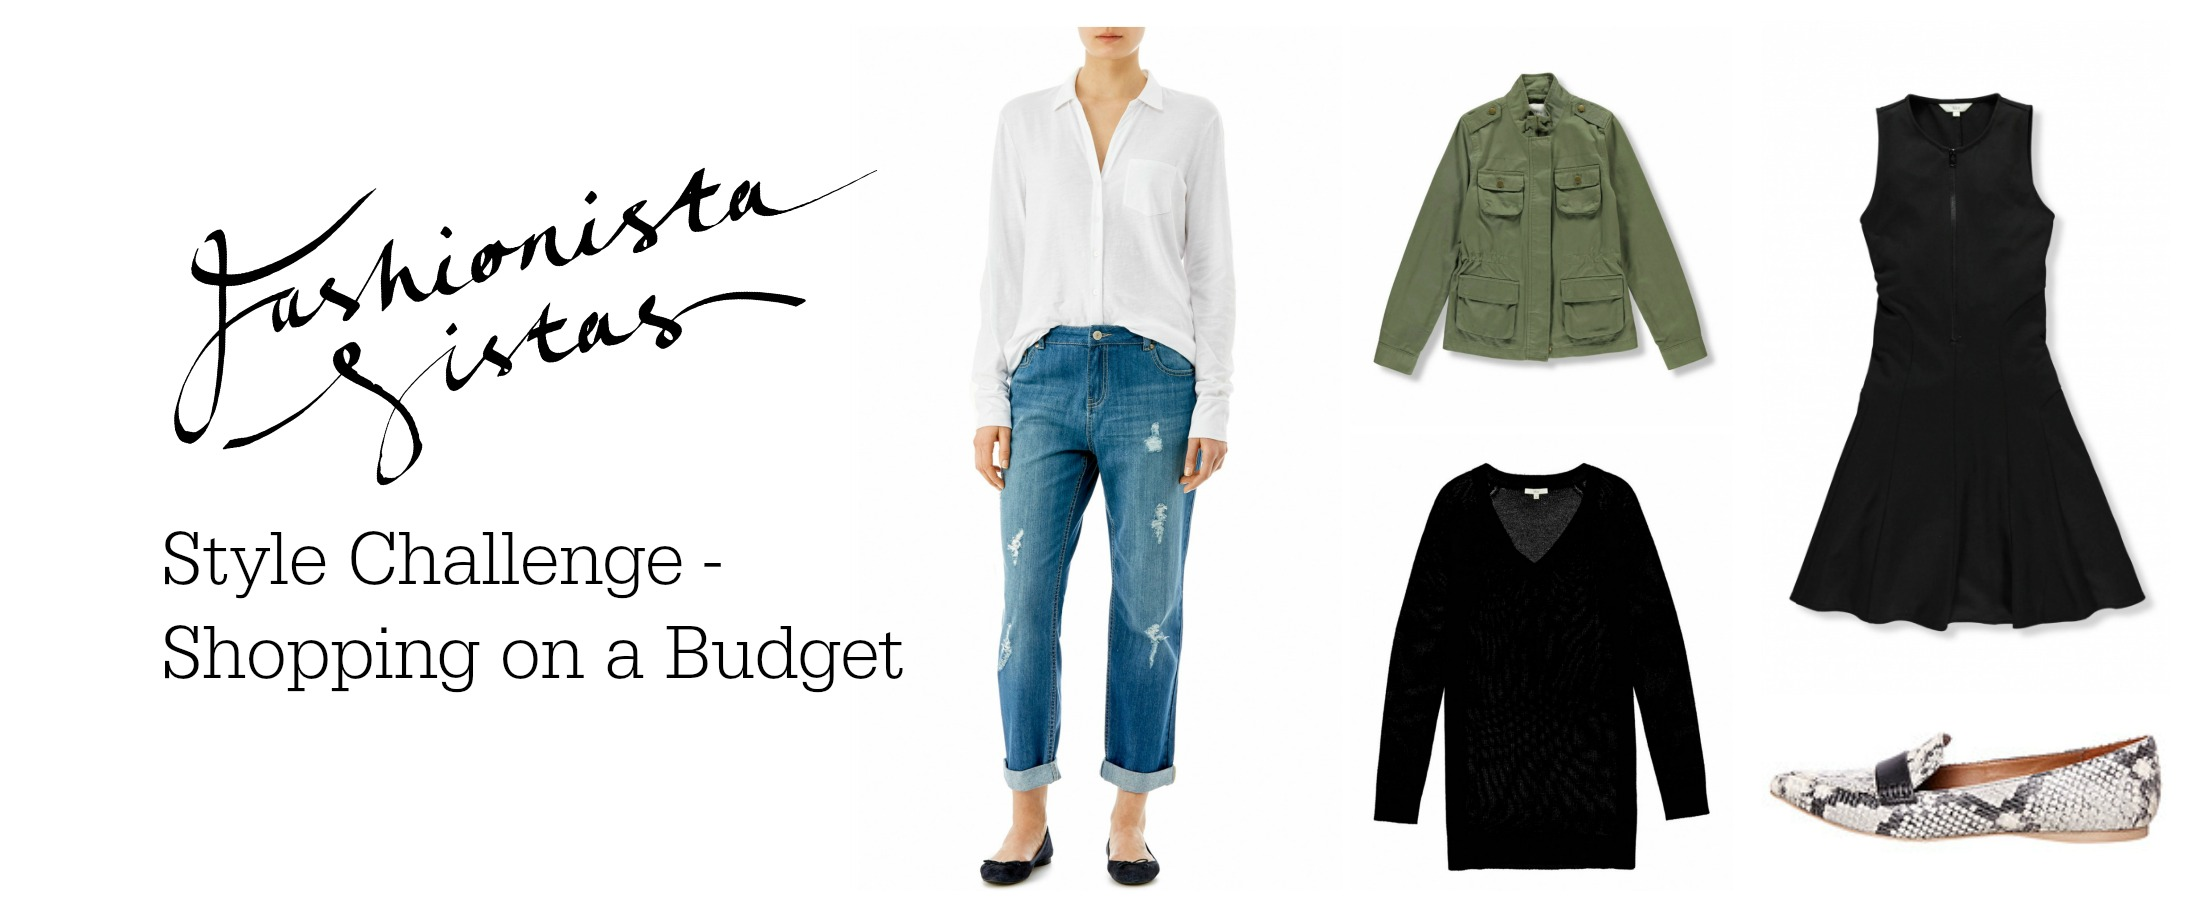 9 Tips For Looking Fashionable On a Budget - Scott Alan Turner 54